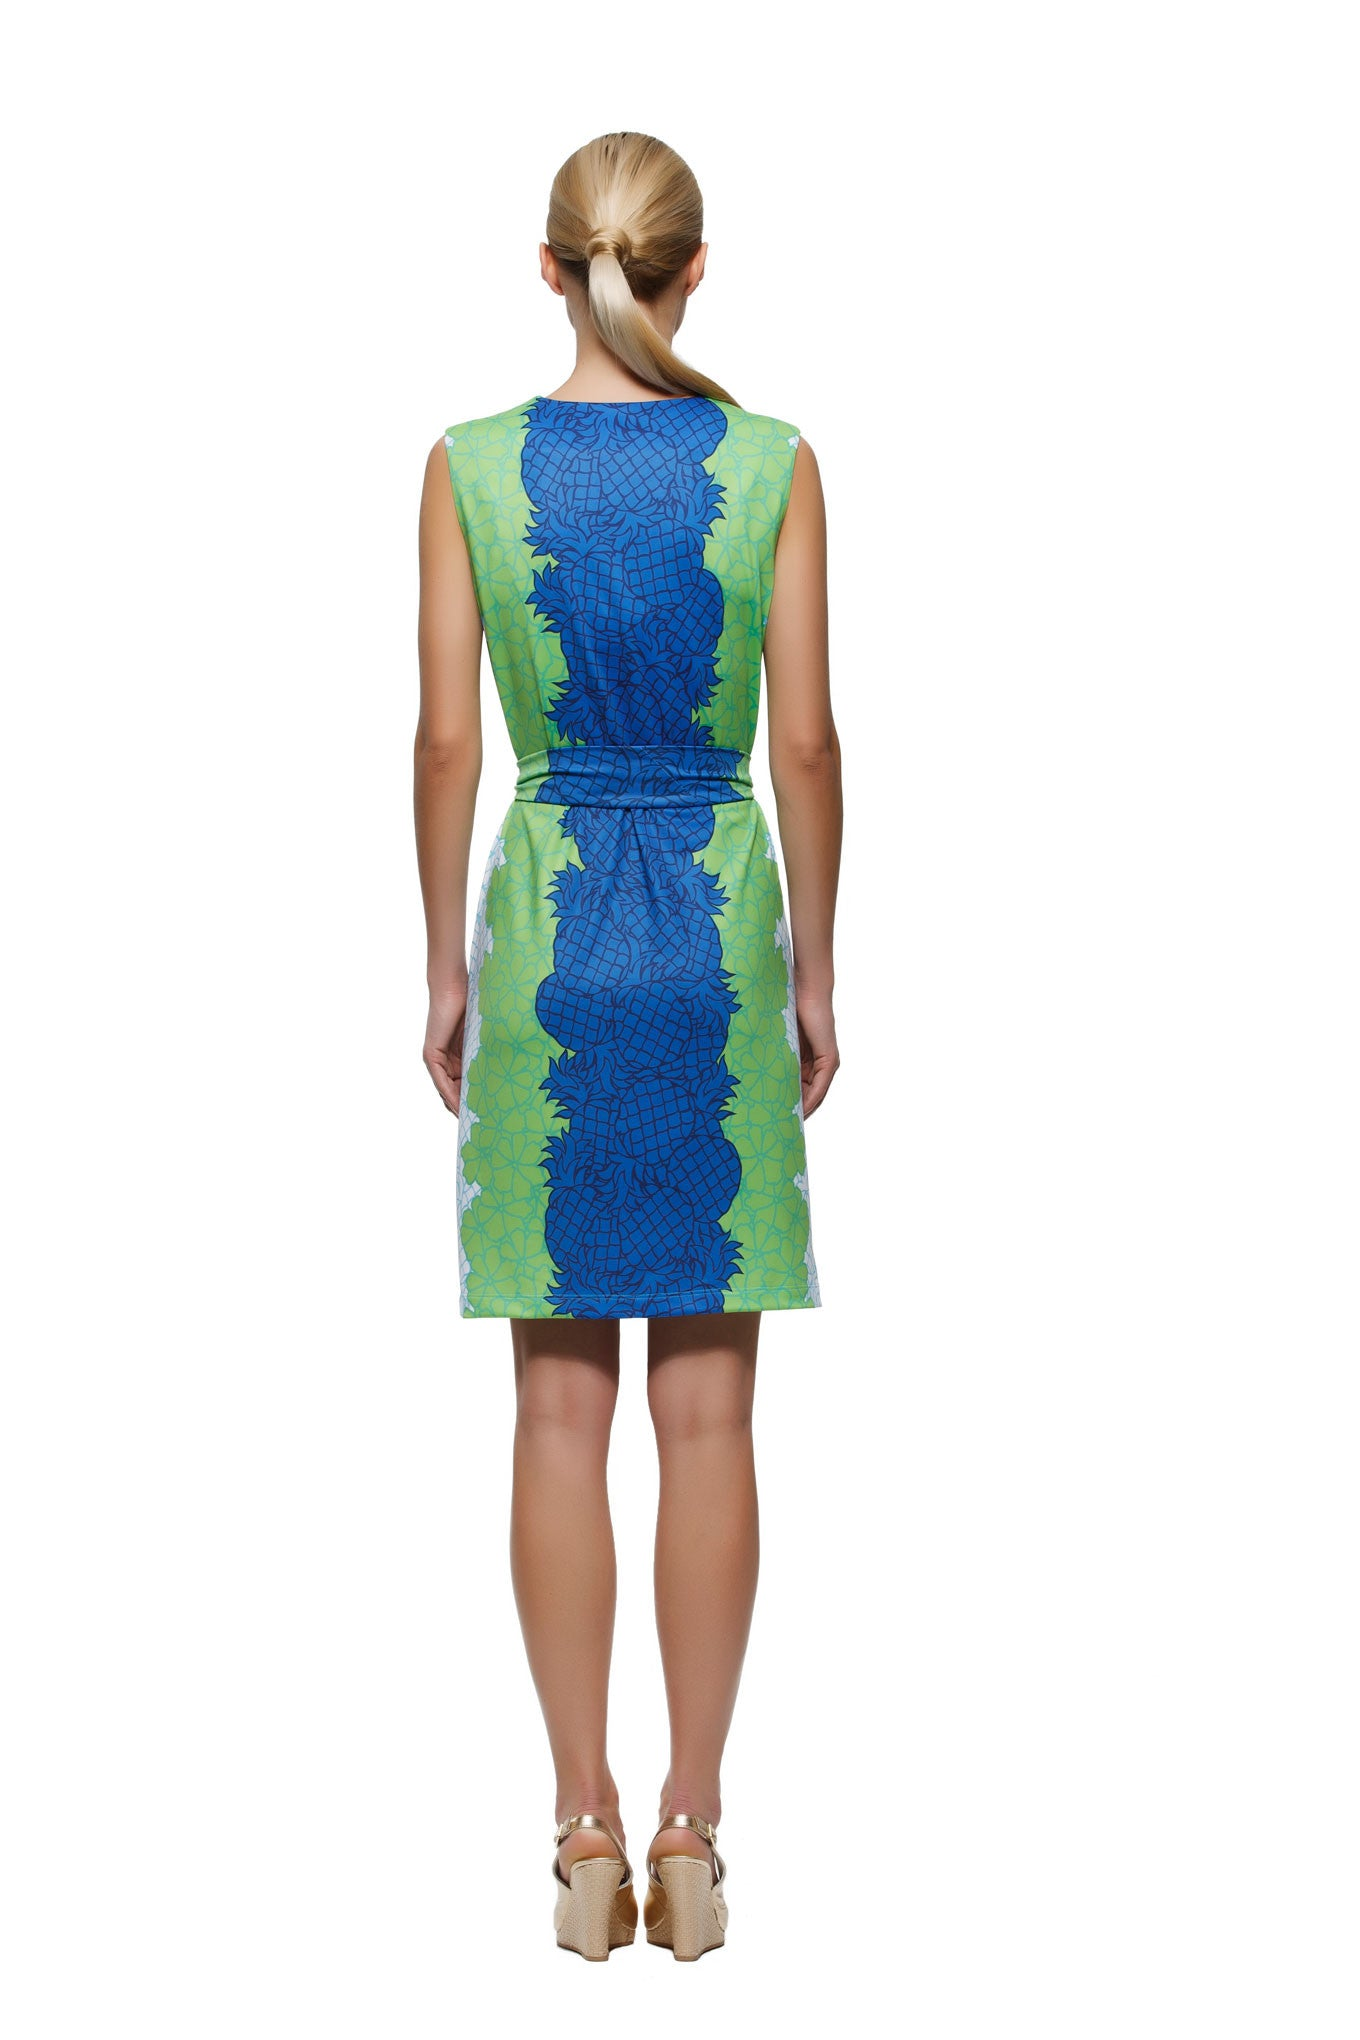 Darcy Dress in Pineapple - Rulon Reed